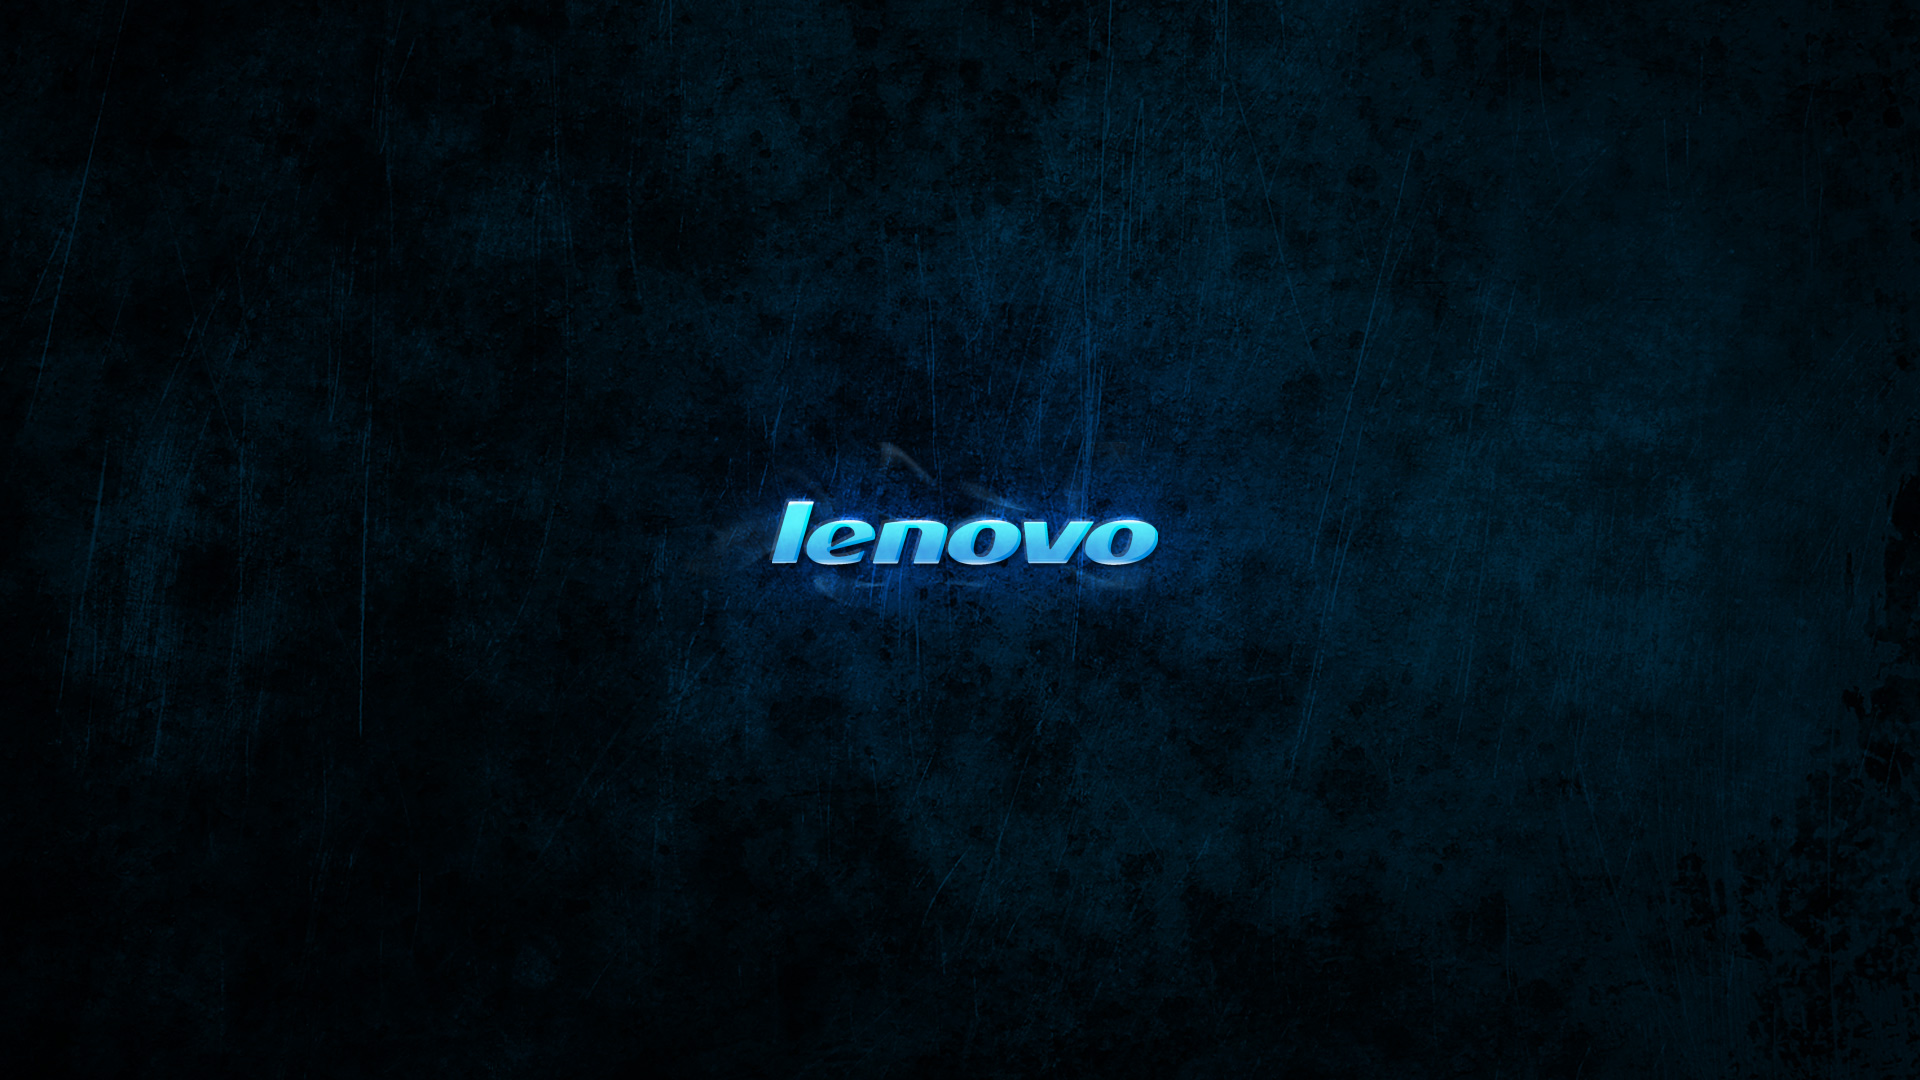 Lenovo Wallpaper Theme: Lenovo Wallpapers High Quality